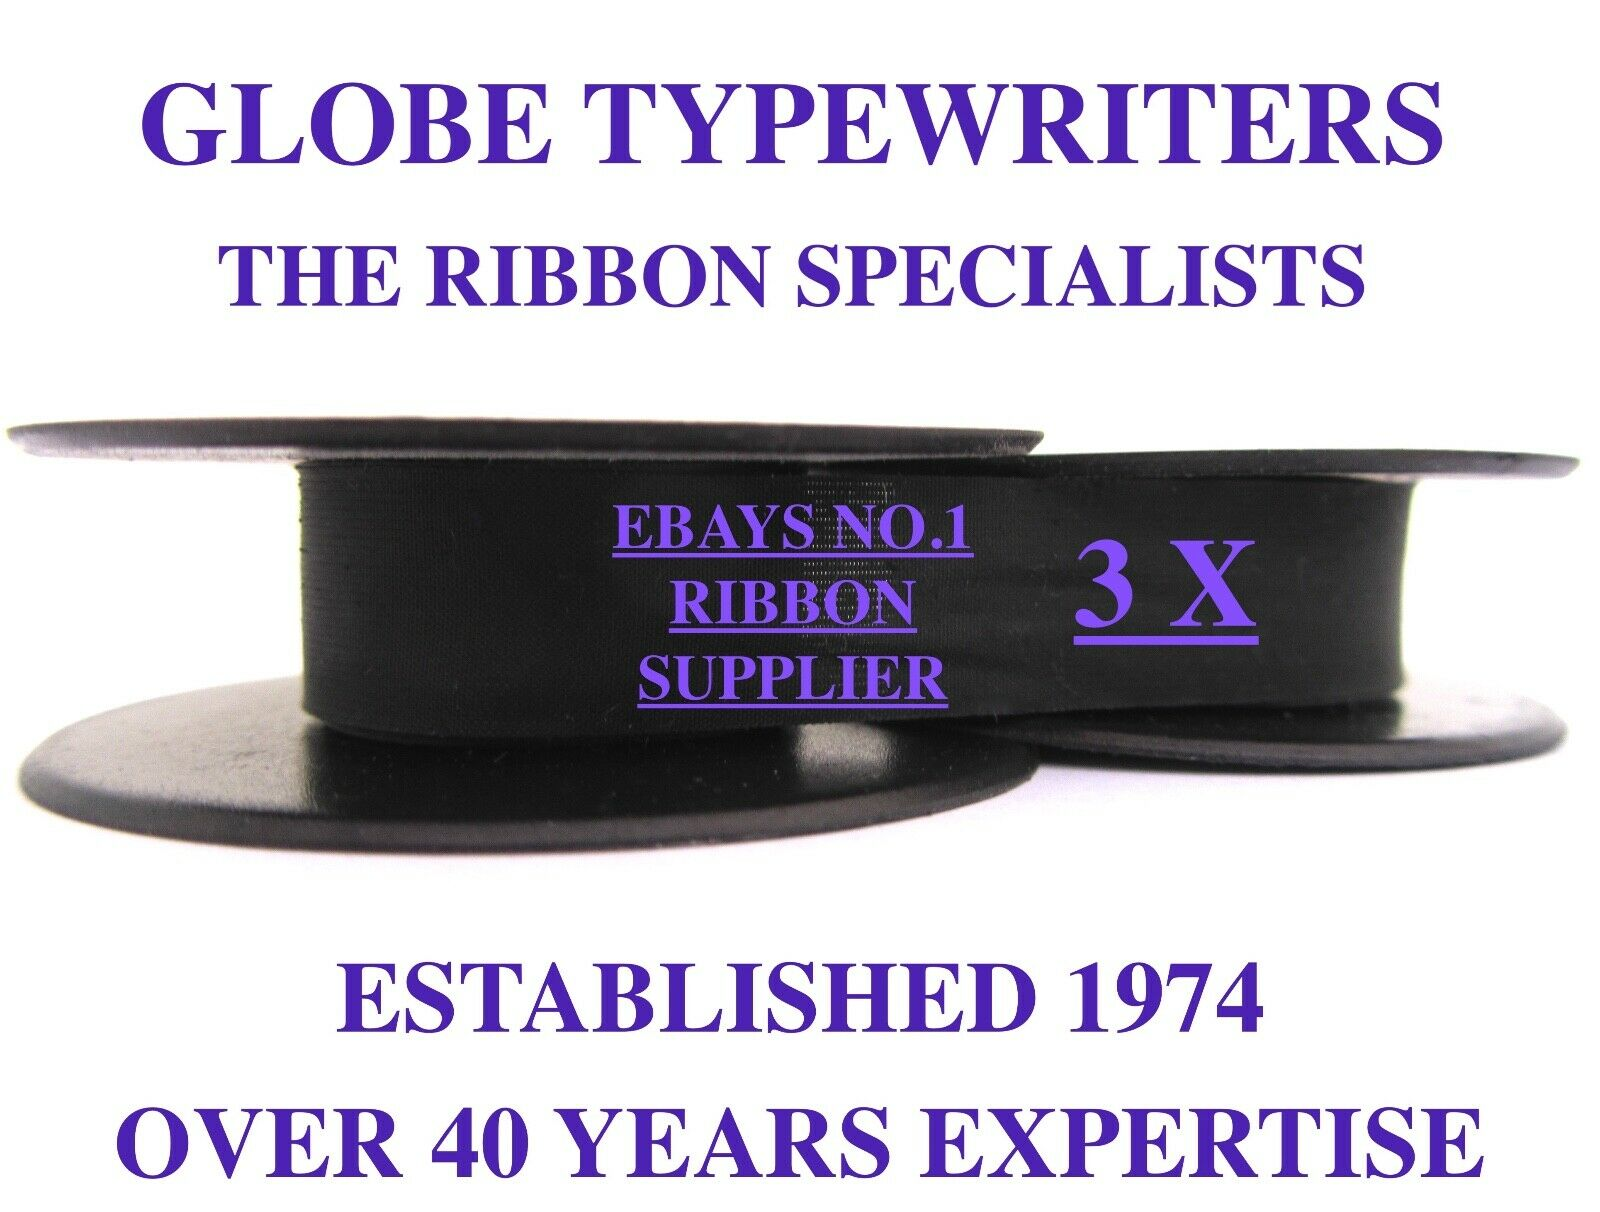 3 x 'ADLER UNIVERSAL 20' *PURPLE* TOP QUALITY *10 METRE* TYPEWRITER RIBBONS